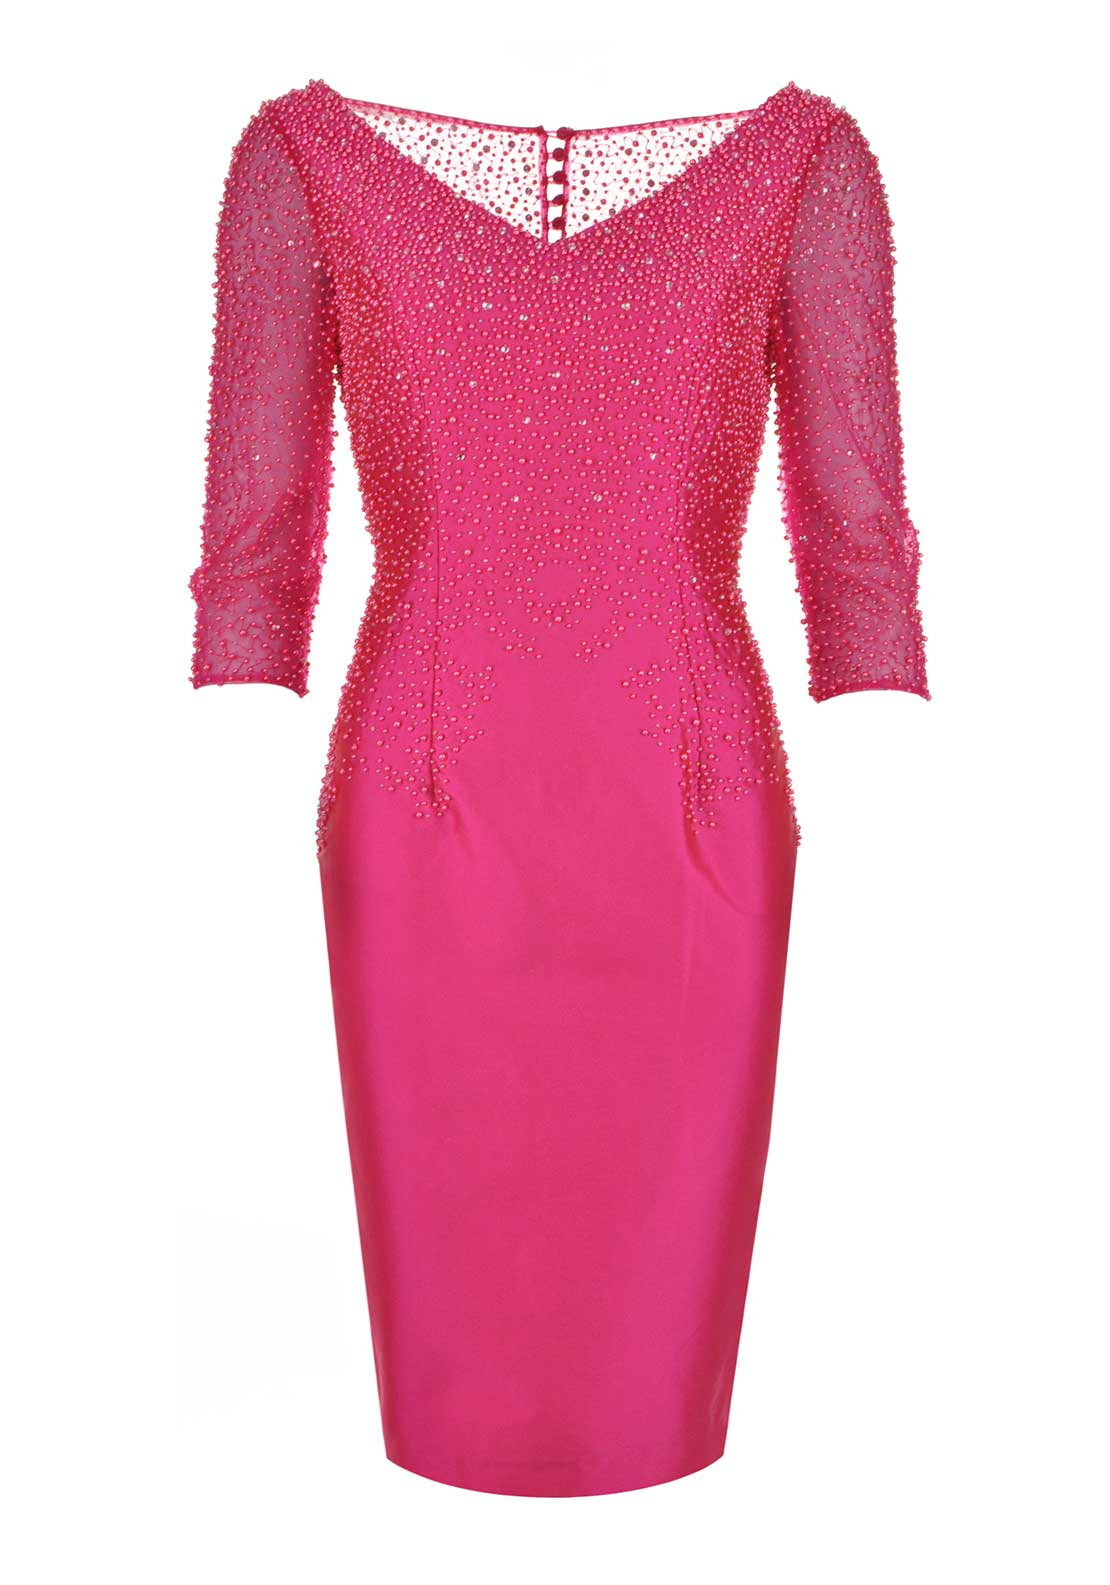 Irresistible Beaded Pencil Dress, Hot Pink